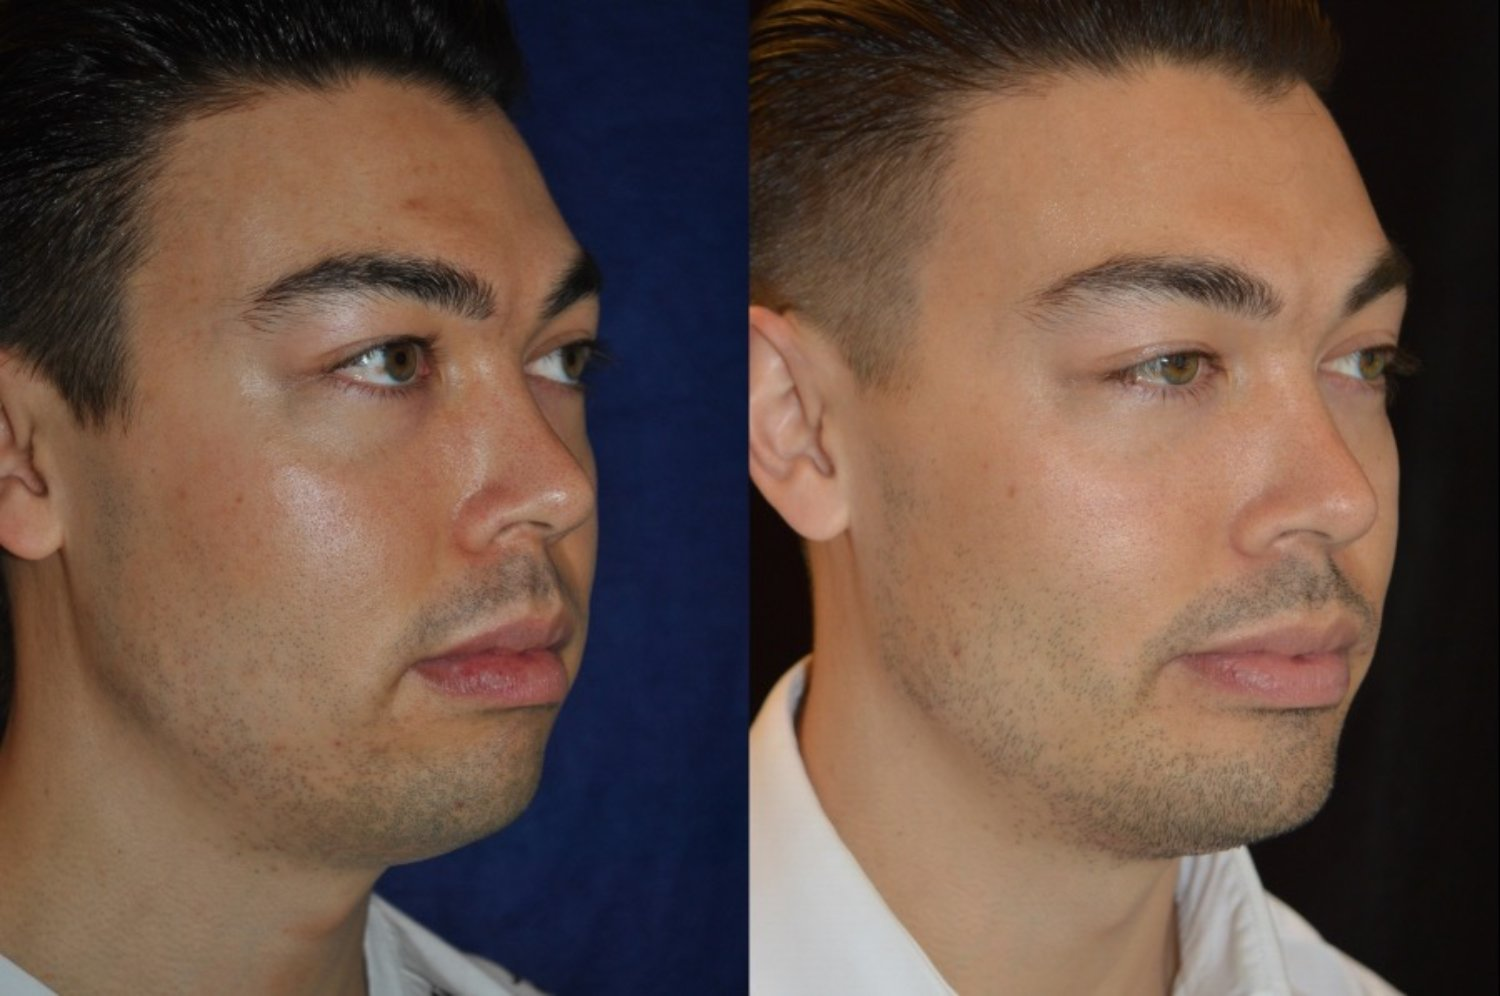 Male square chin implant & buccal fat pad removal, oblique